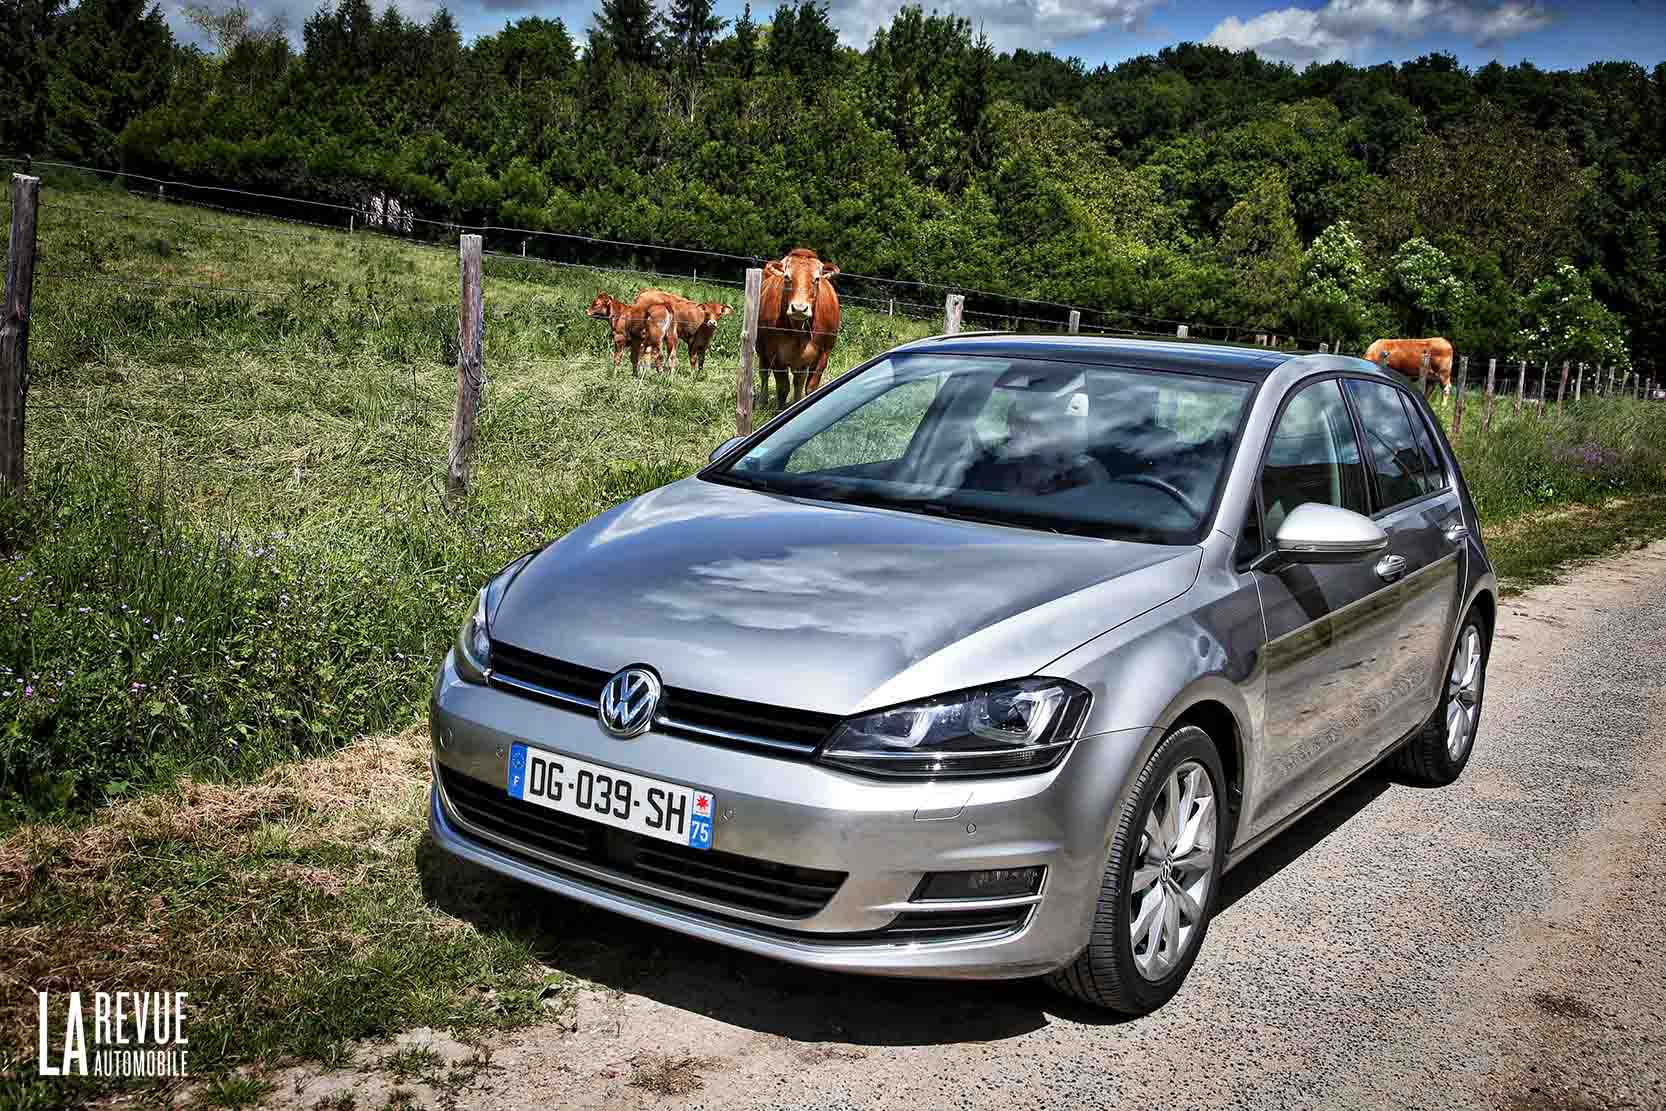 2019 Volkswagen Golf Plus Life photo - 6